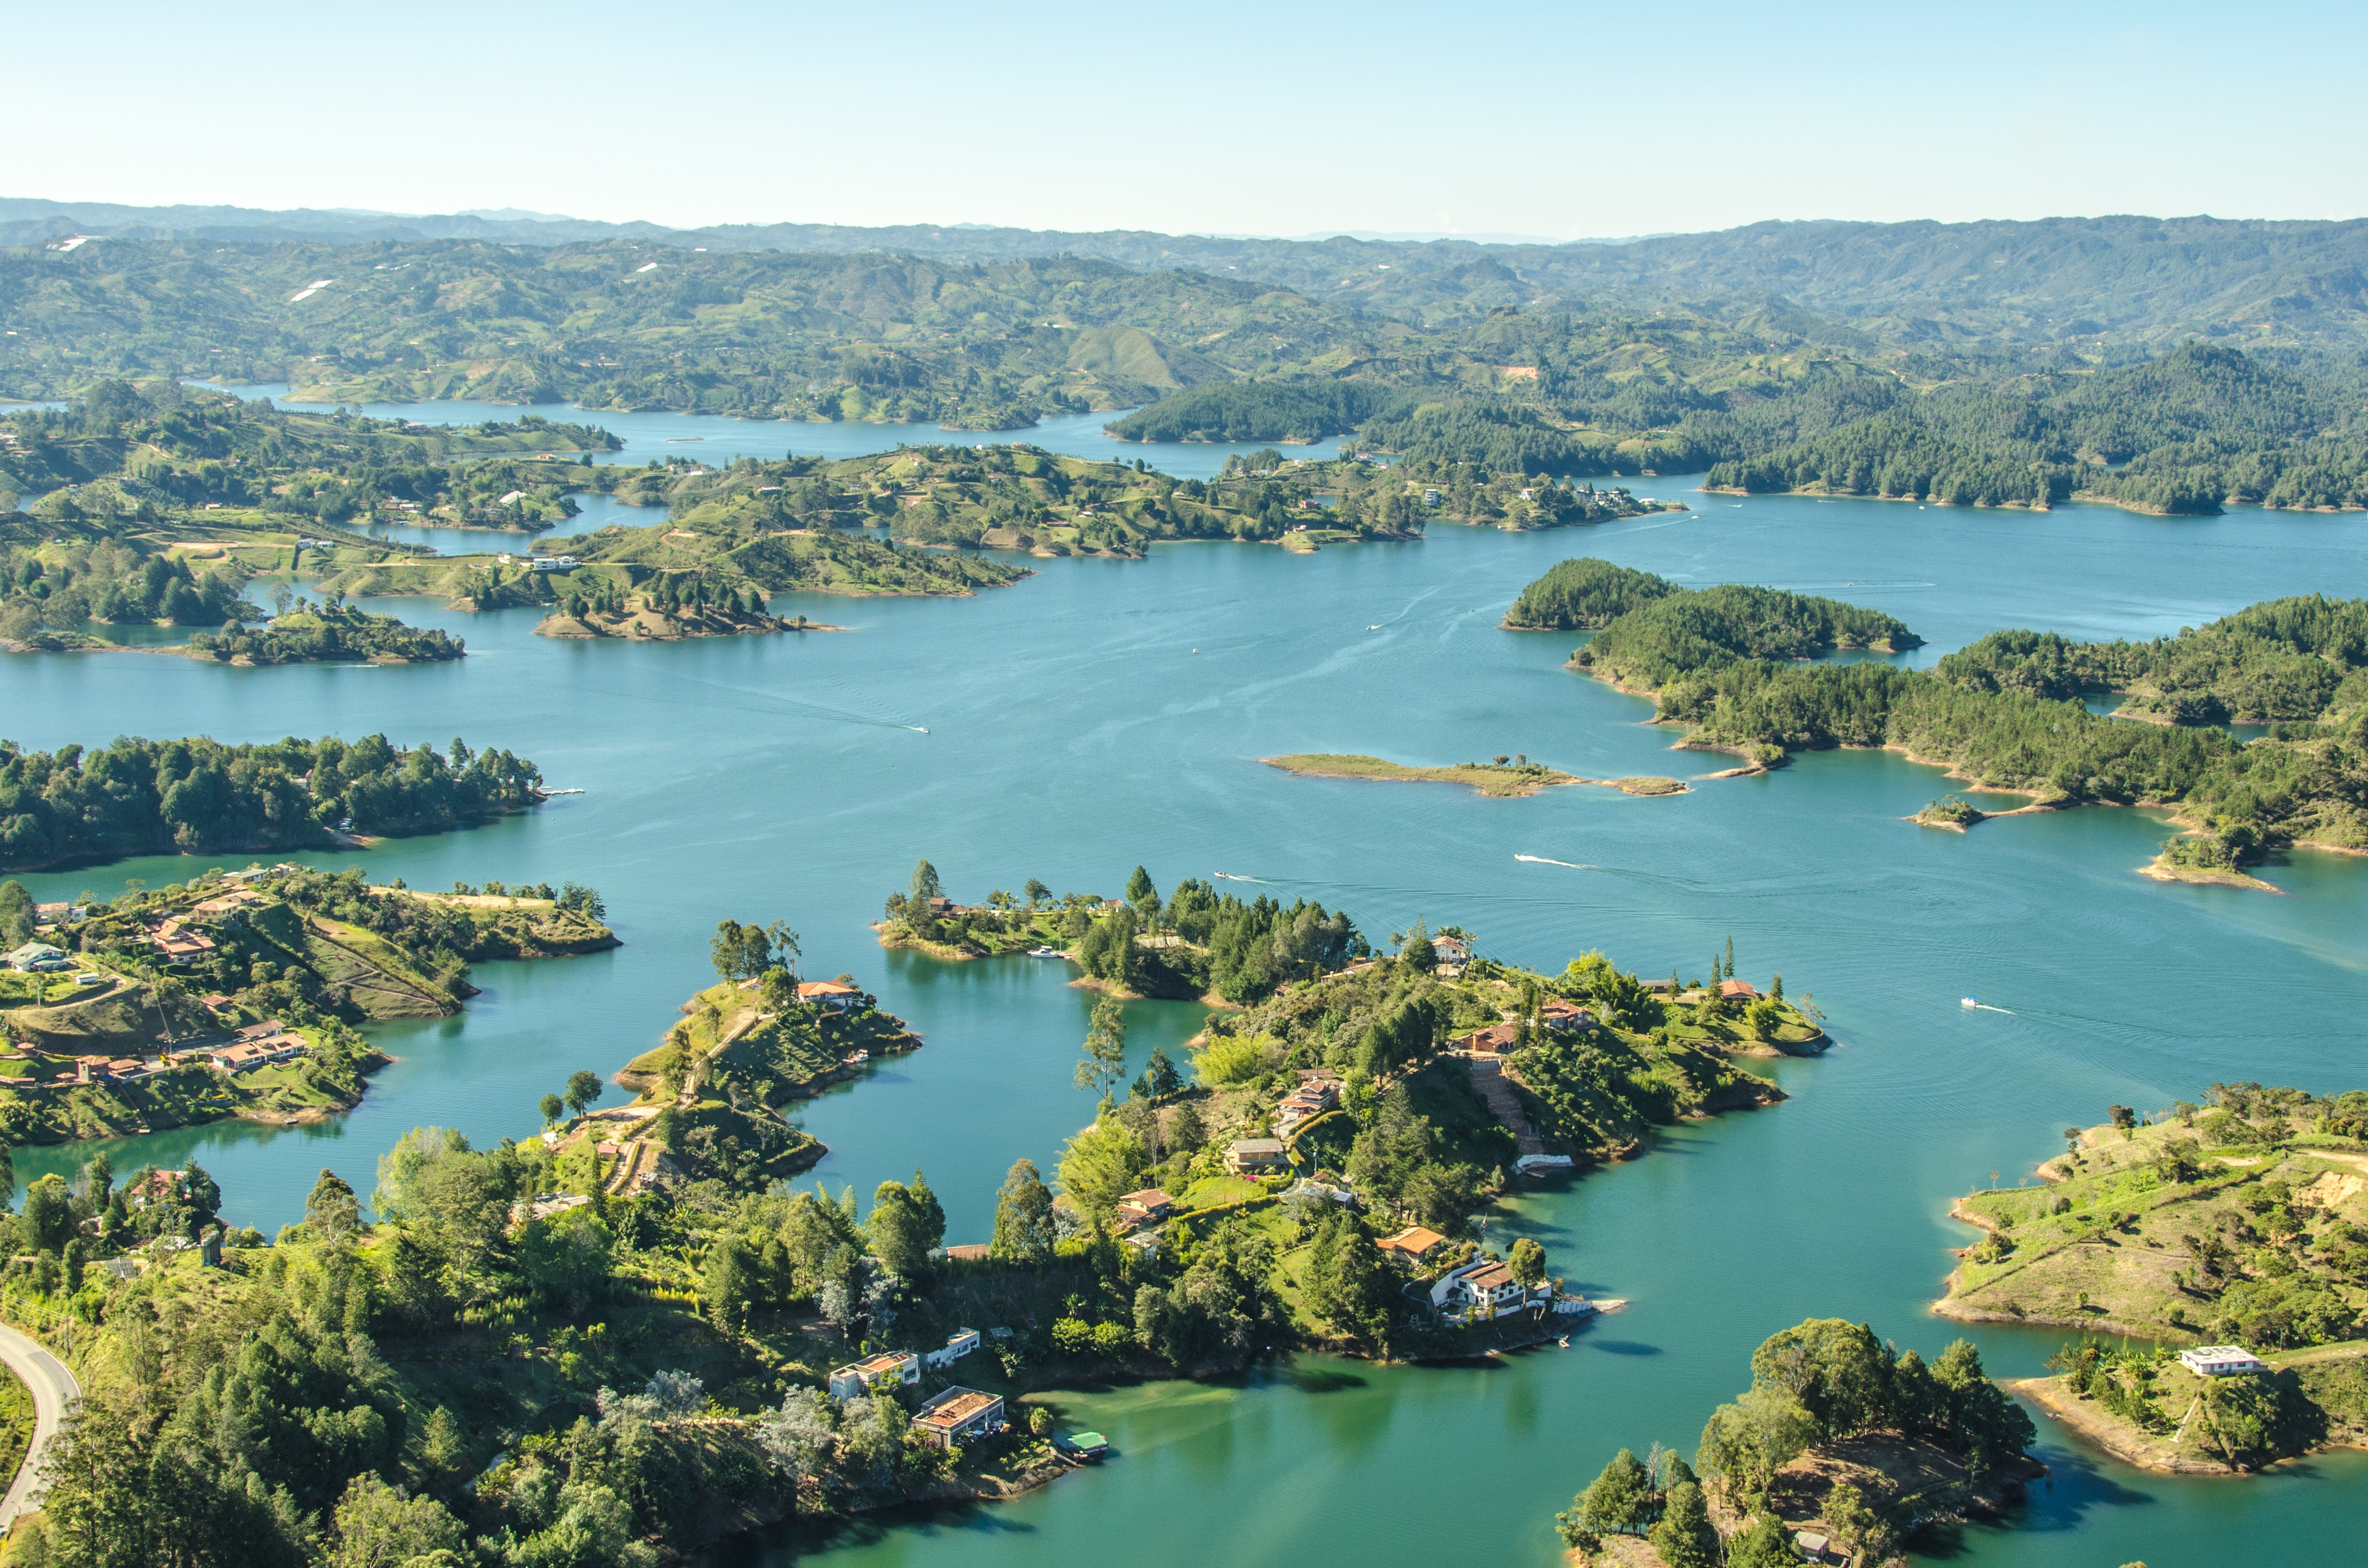 aerial photography of islands surrounded with body of water